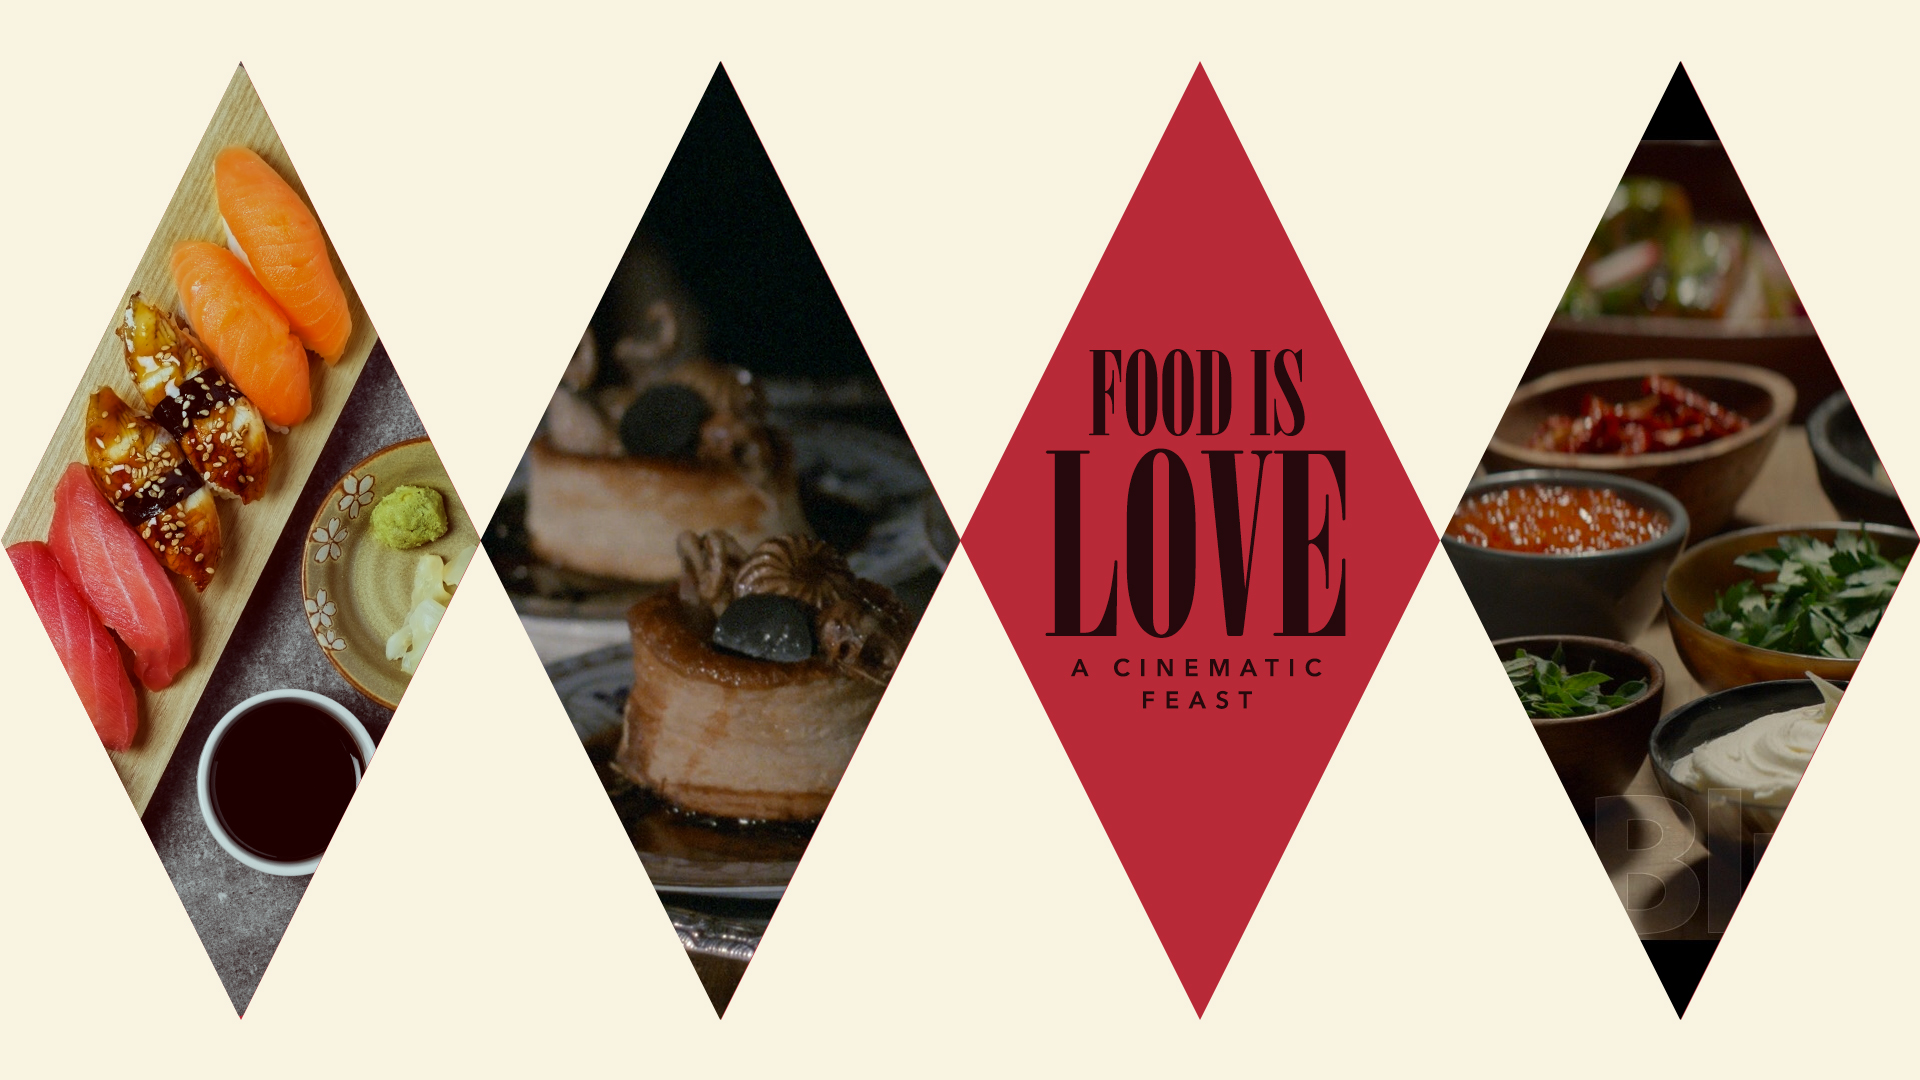 foodislove_cover_1920x1080.jpg